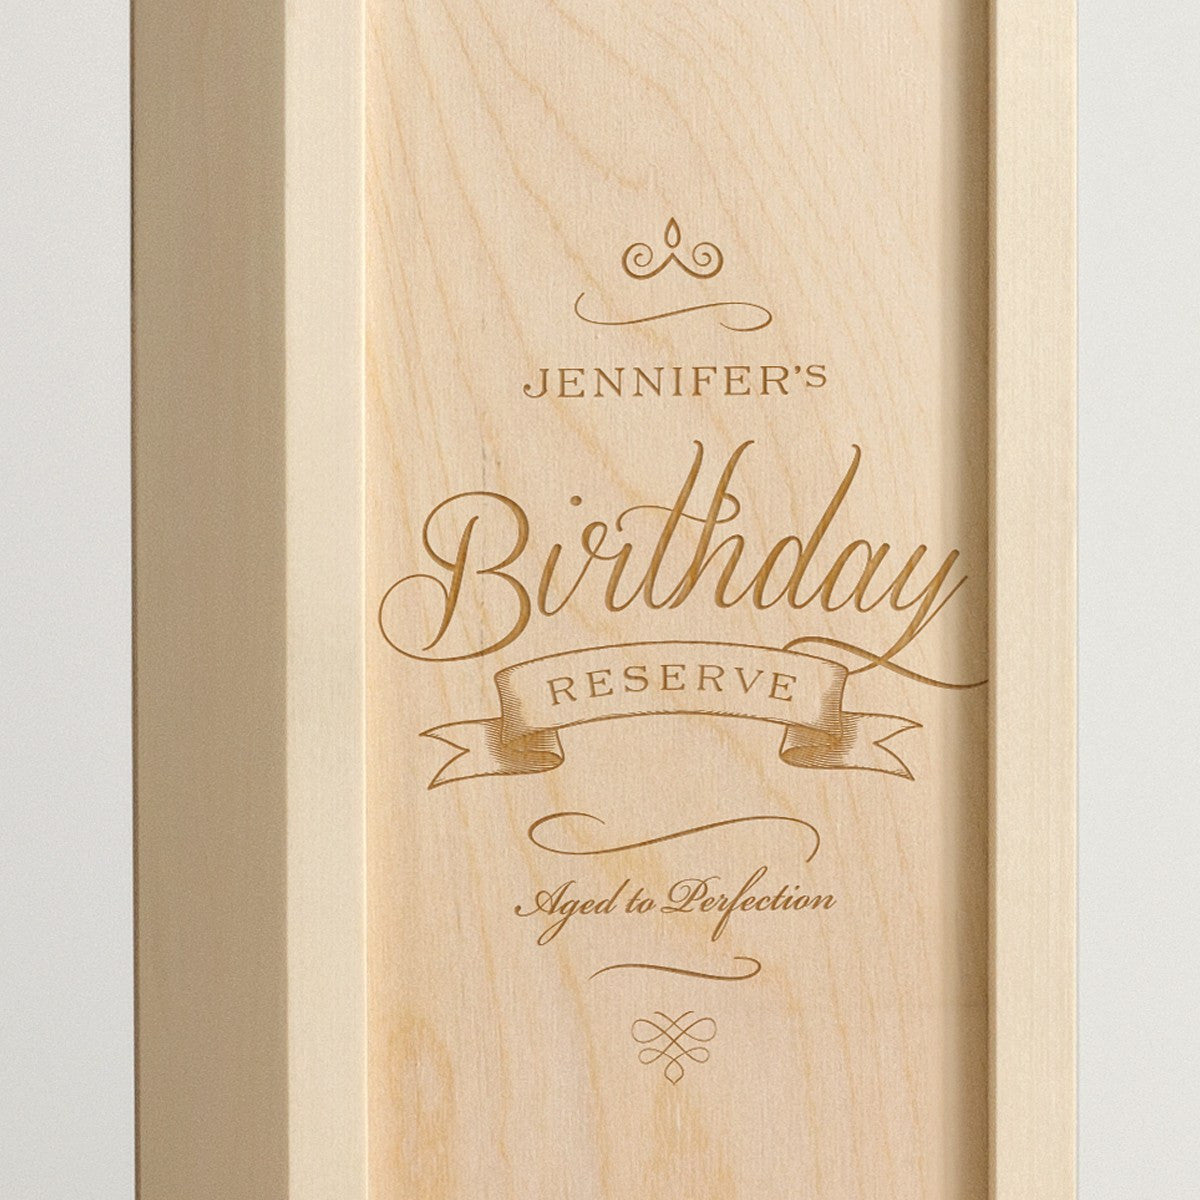 Fancy Birthday Reserve - Wine Box - Detail Image